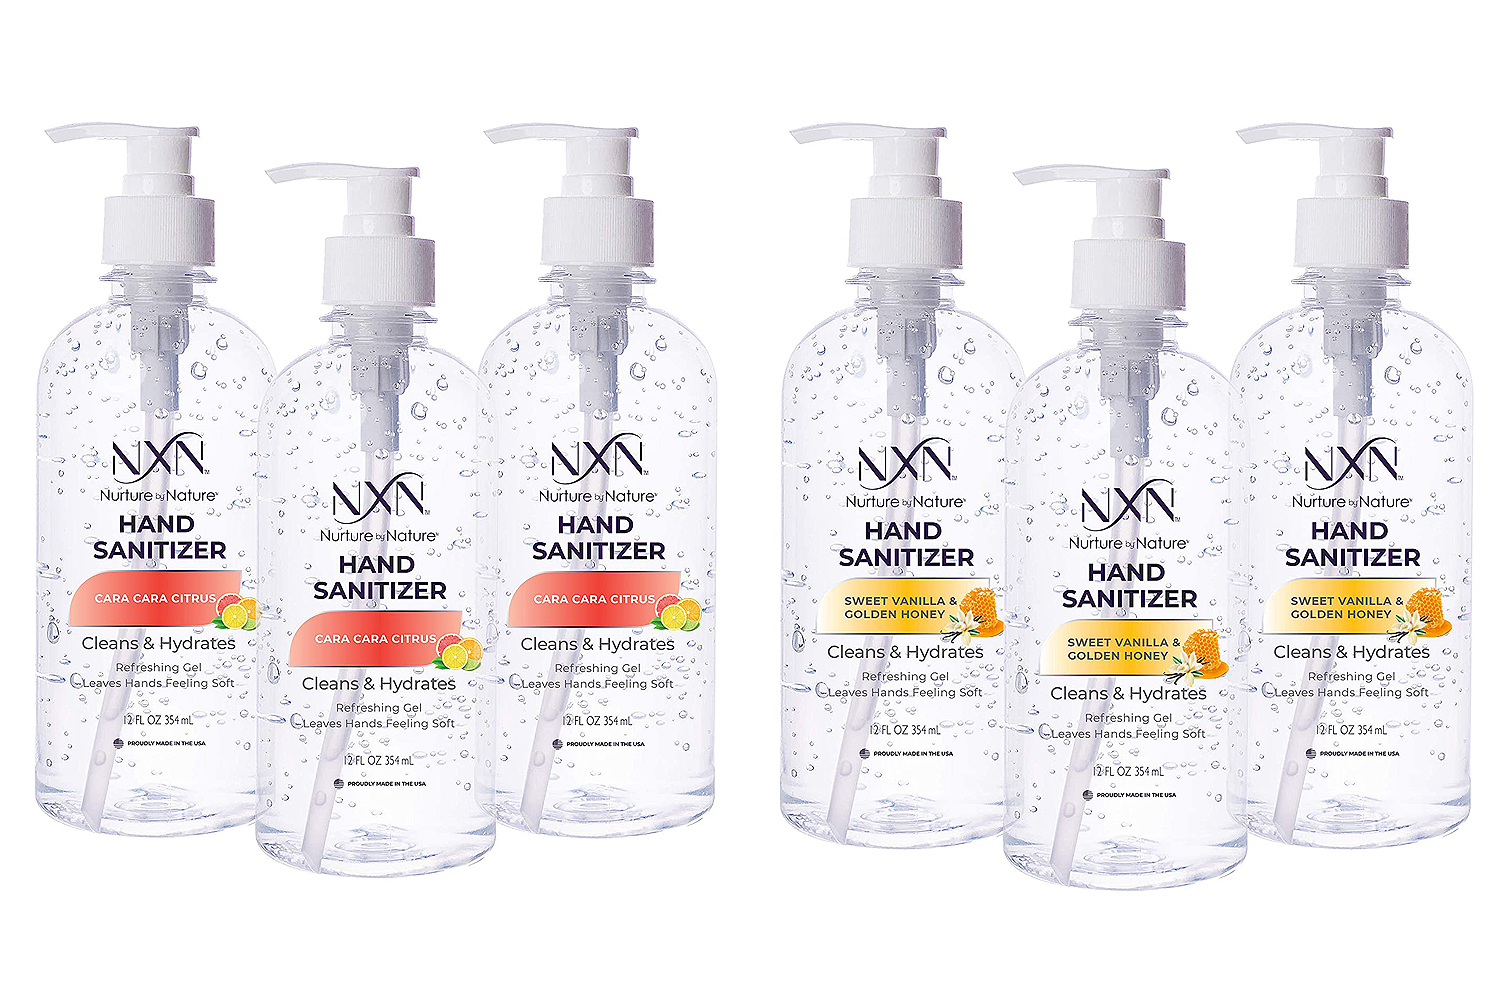 NXN hand sanitizer